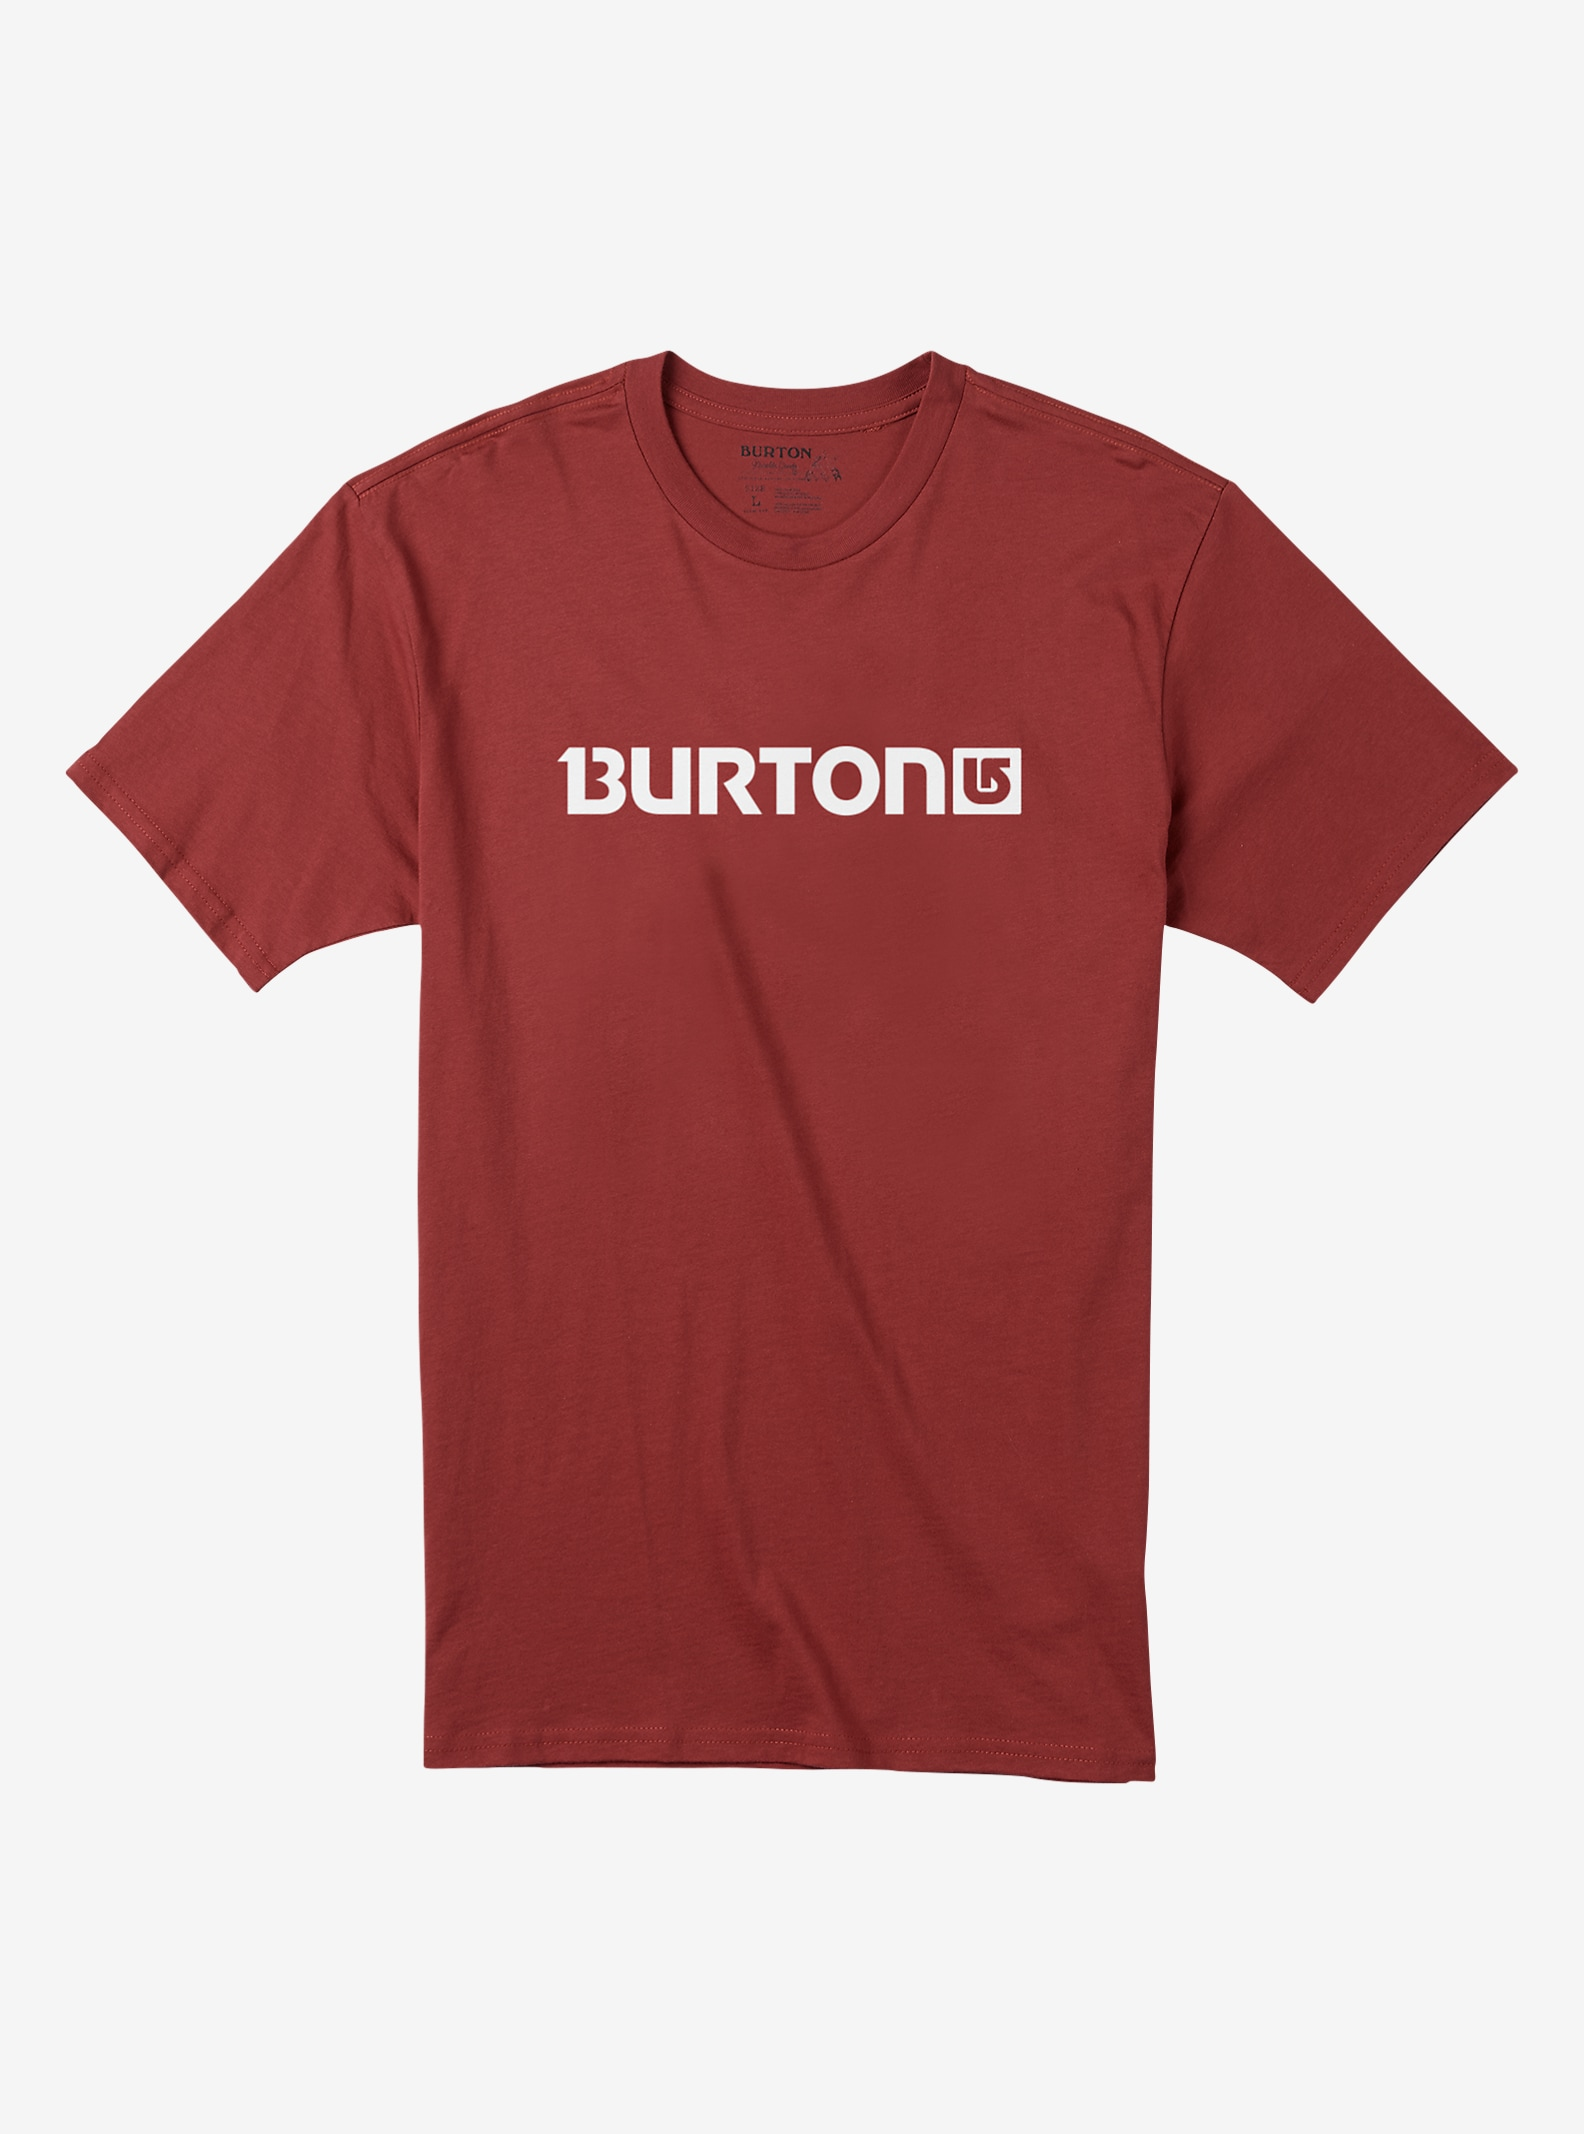 Burton Logo Horizontal Short Sleeve T Shirt shown in Brick Red